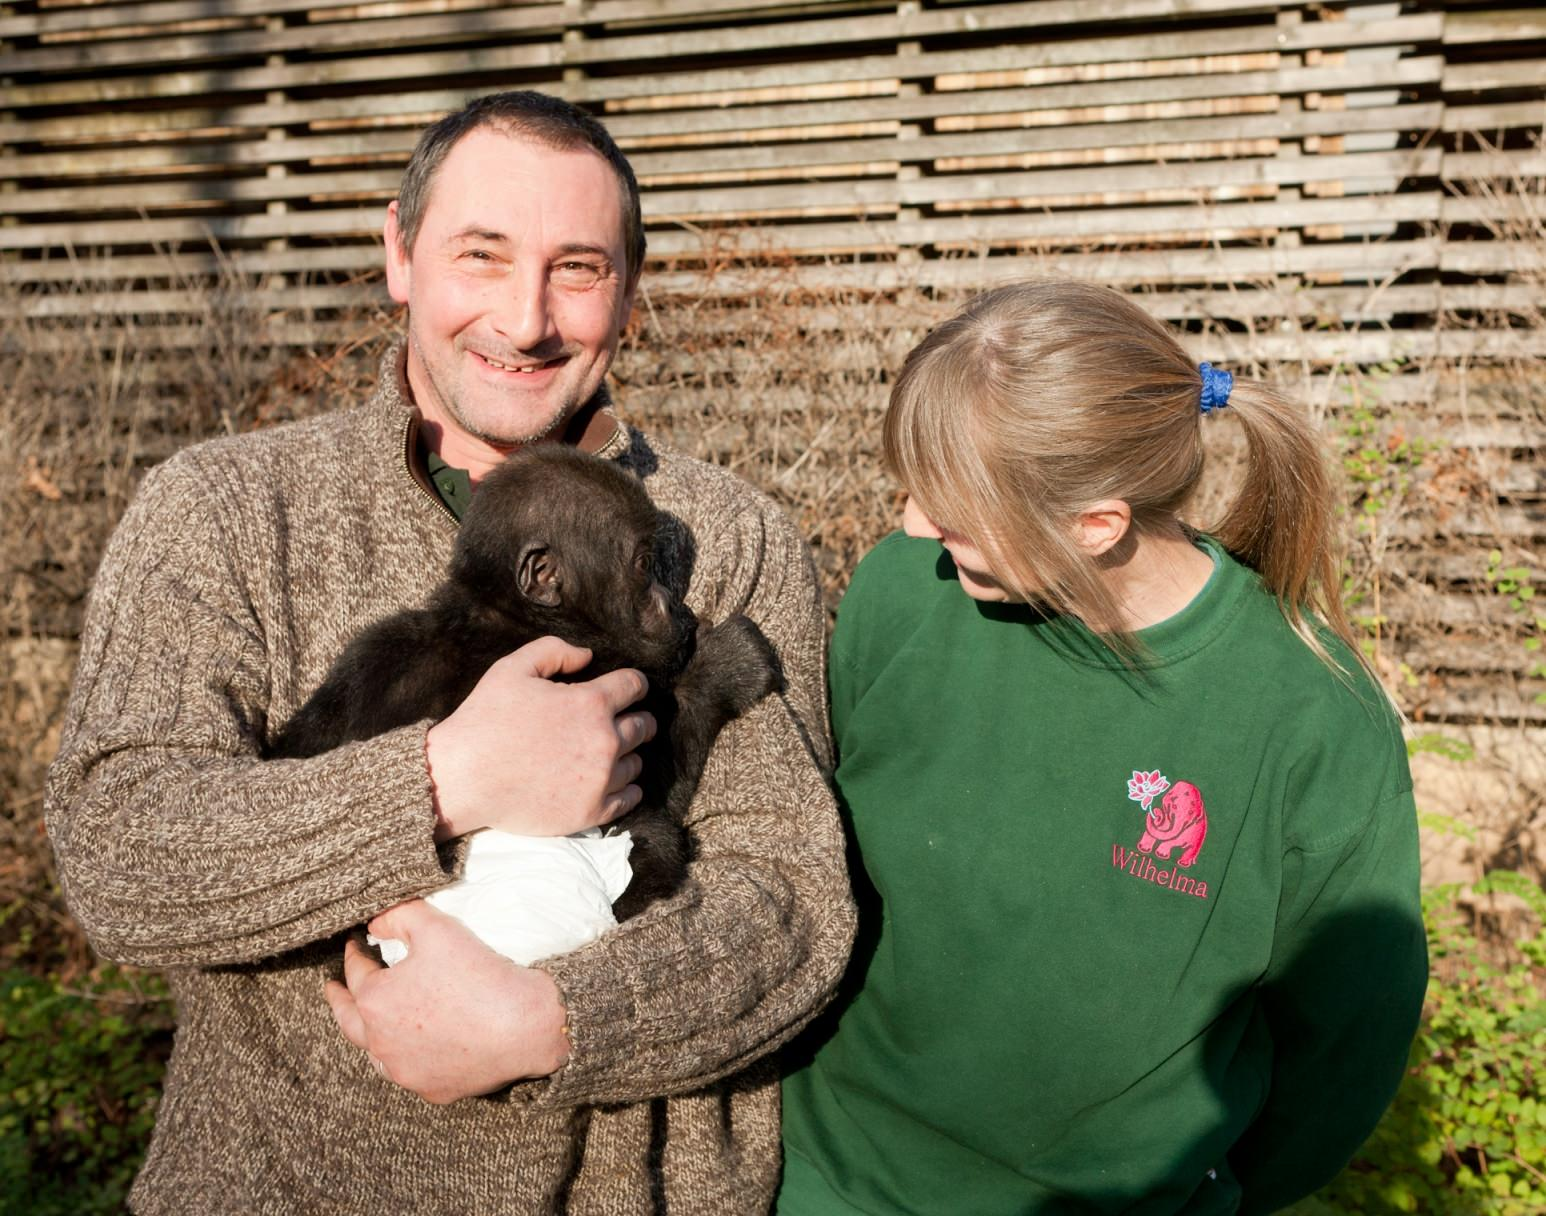 Baby gorilla travels to new home with Stena Line